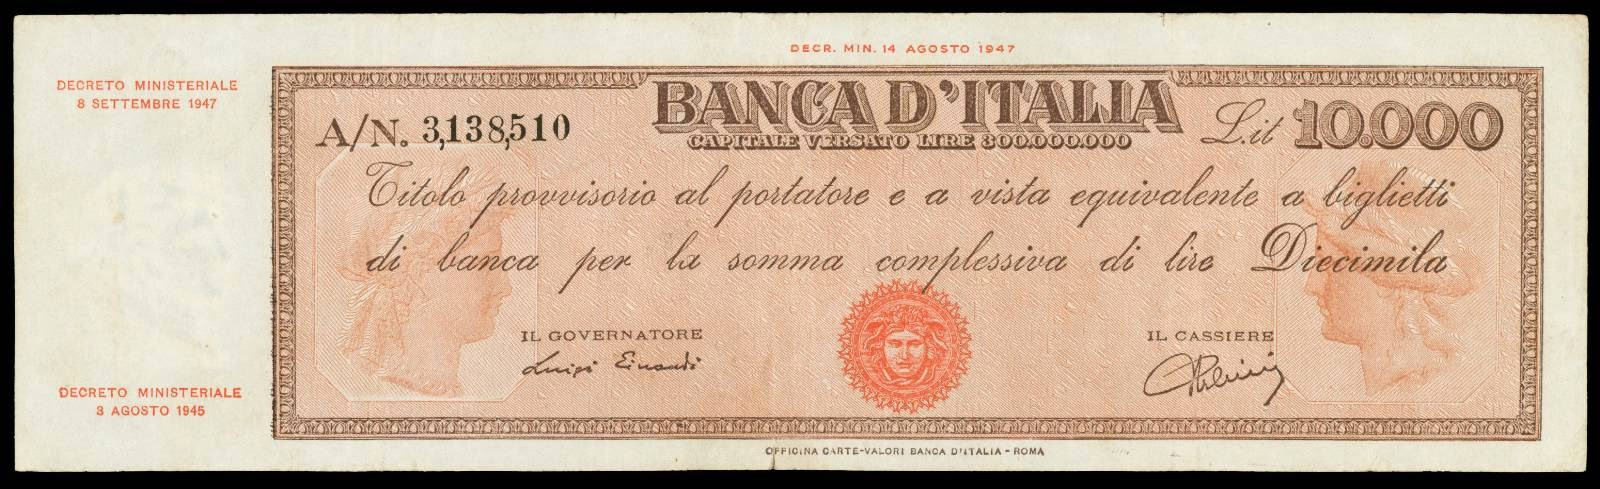 Italy 10000 Lire 1947 Provisional bearer note